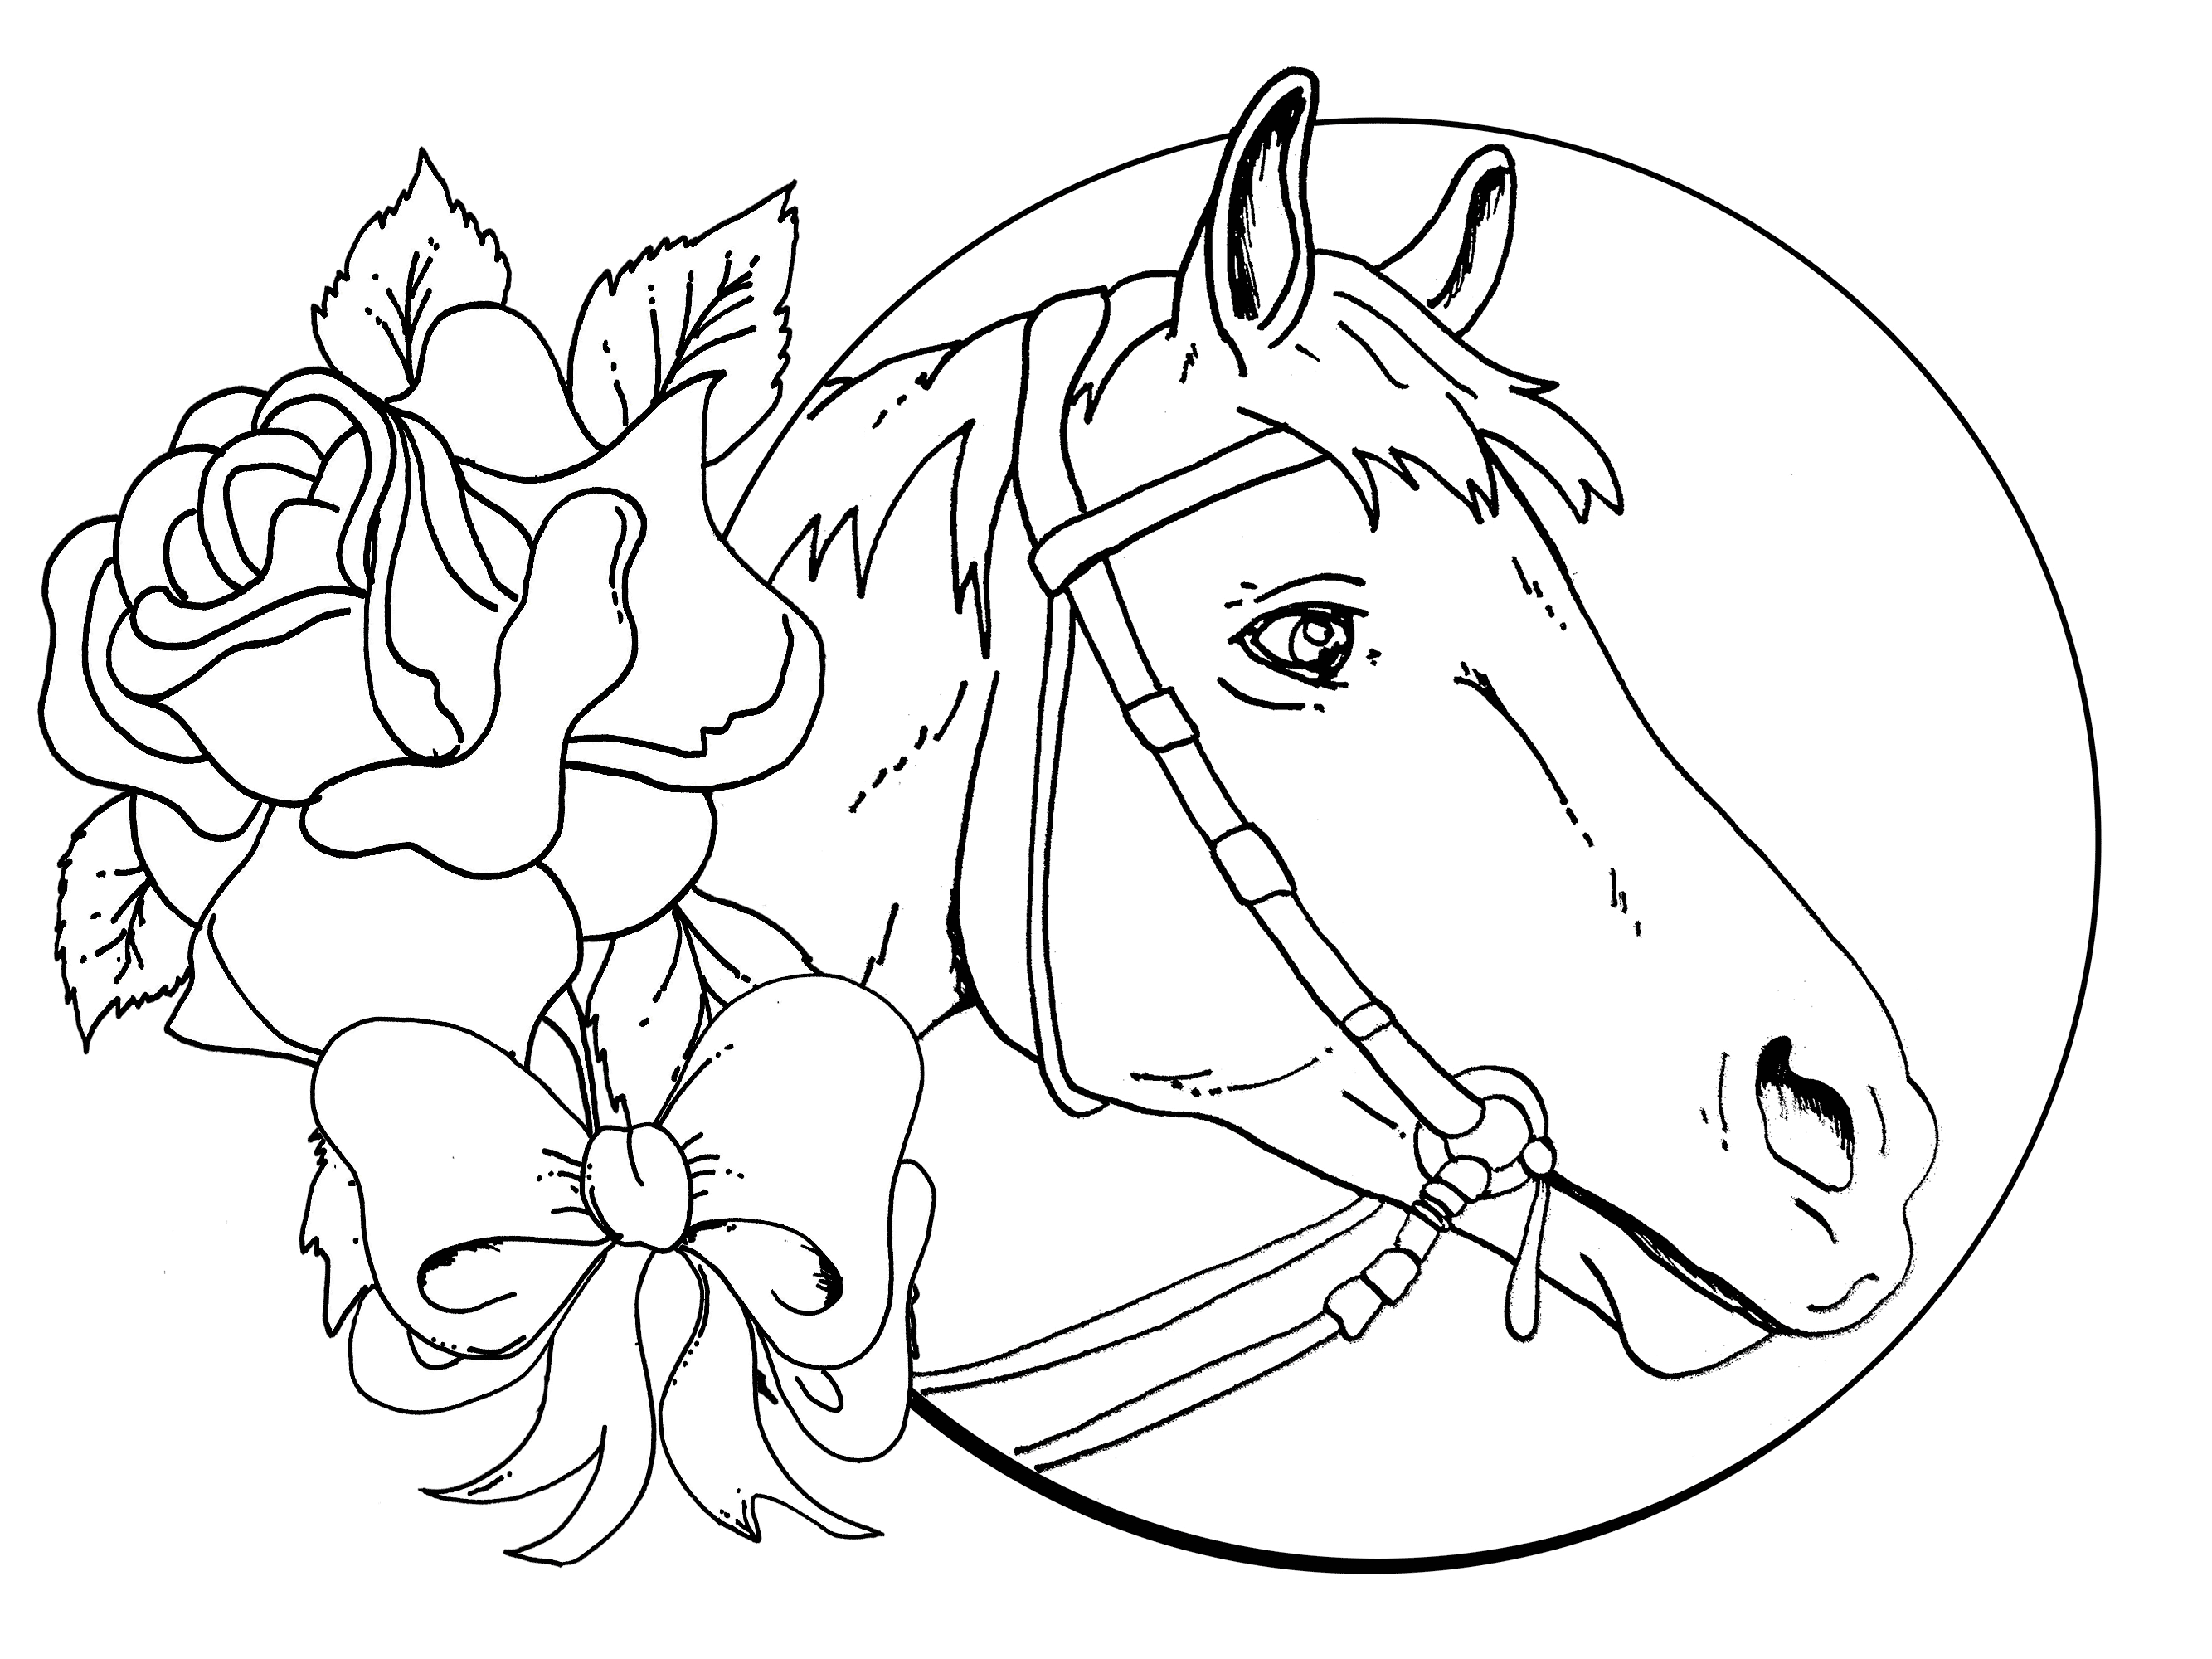 Coloring Pages For Girls 1 Coloring Kids